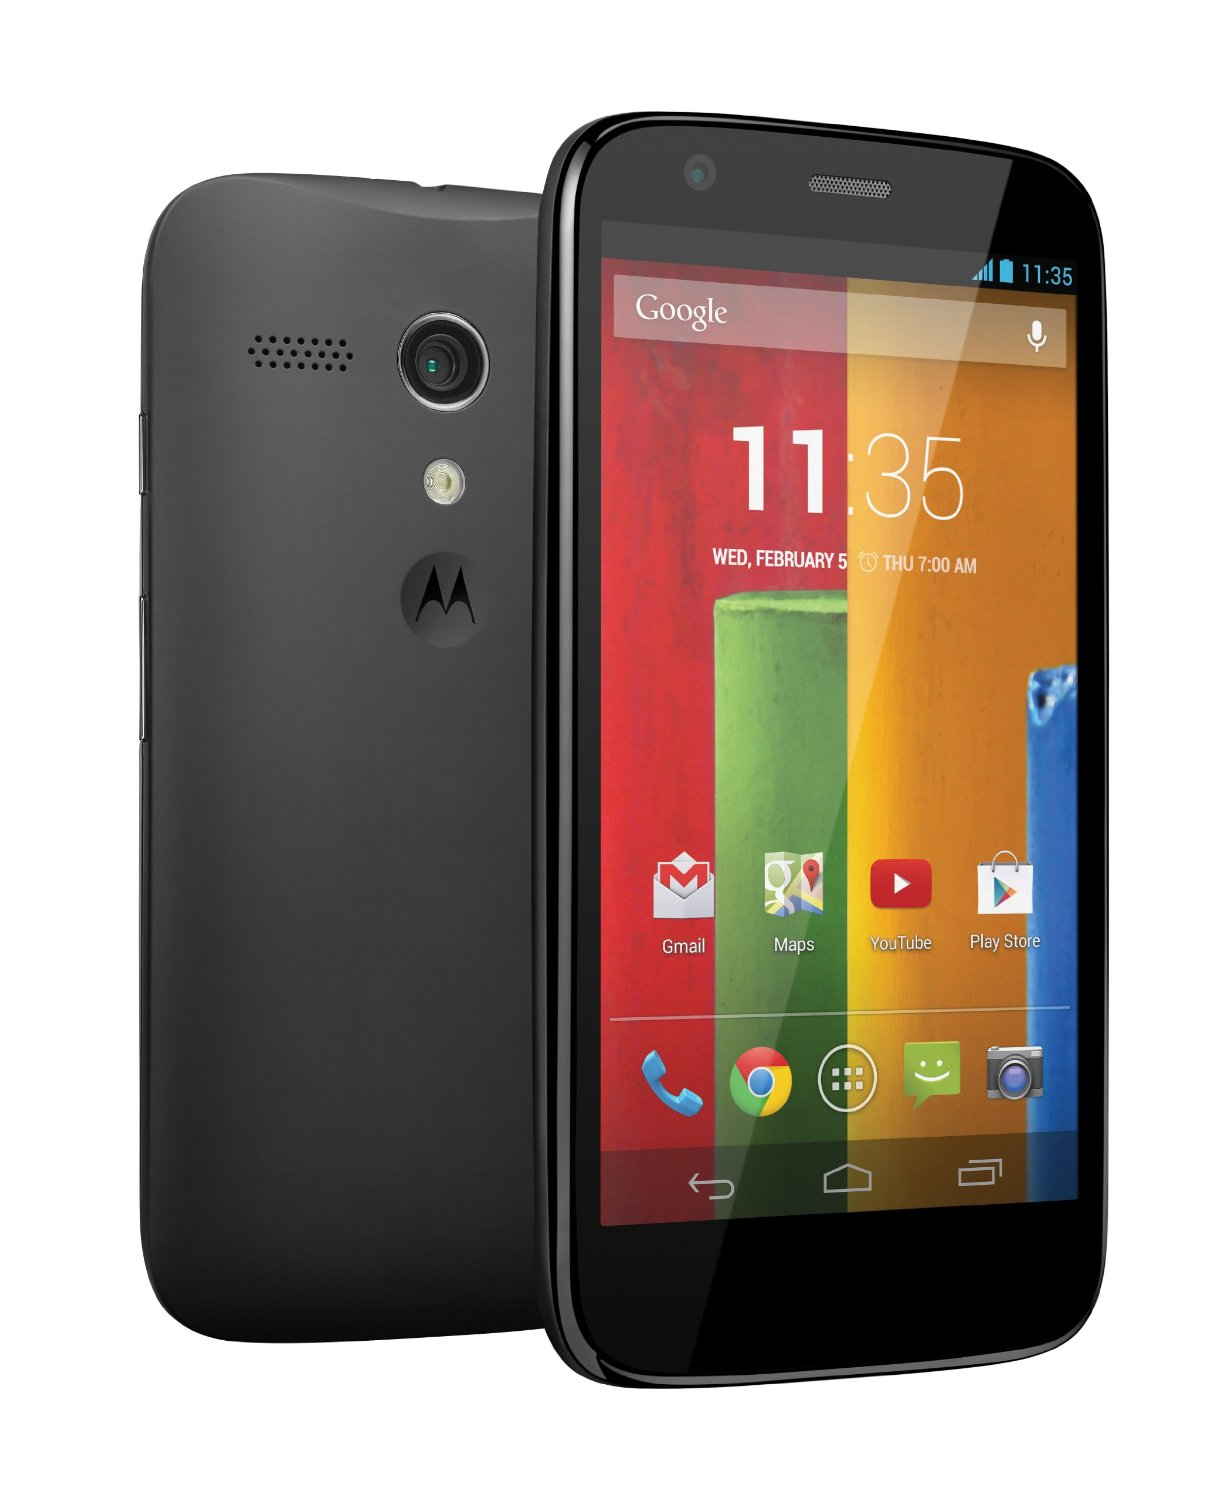 Phone Motorola Cheapest Android Phone 10 cheap android phones worth buying motorola moto g 179 99